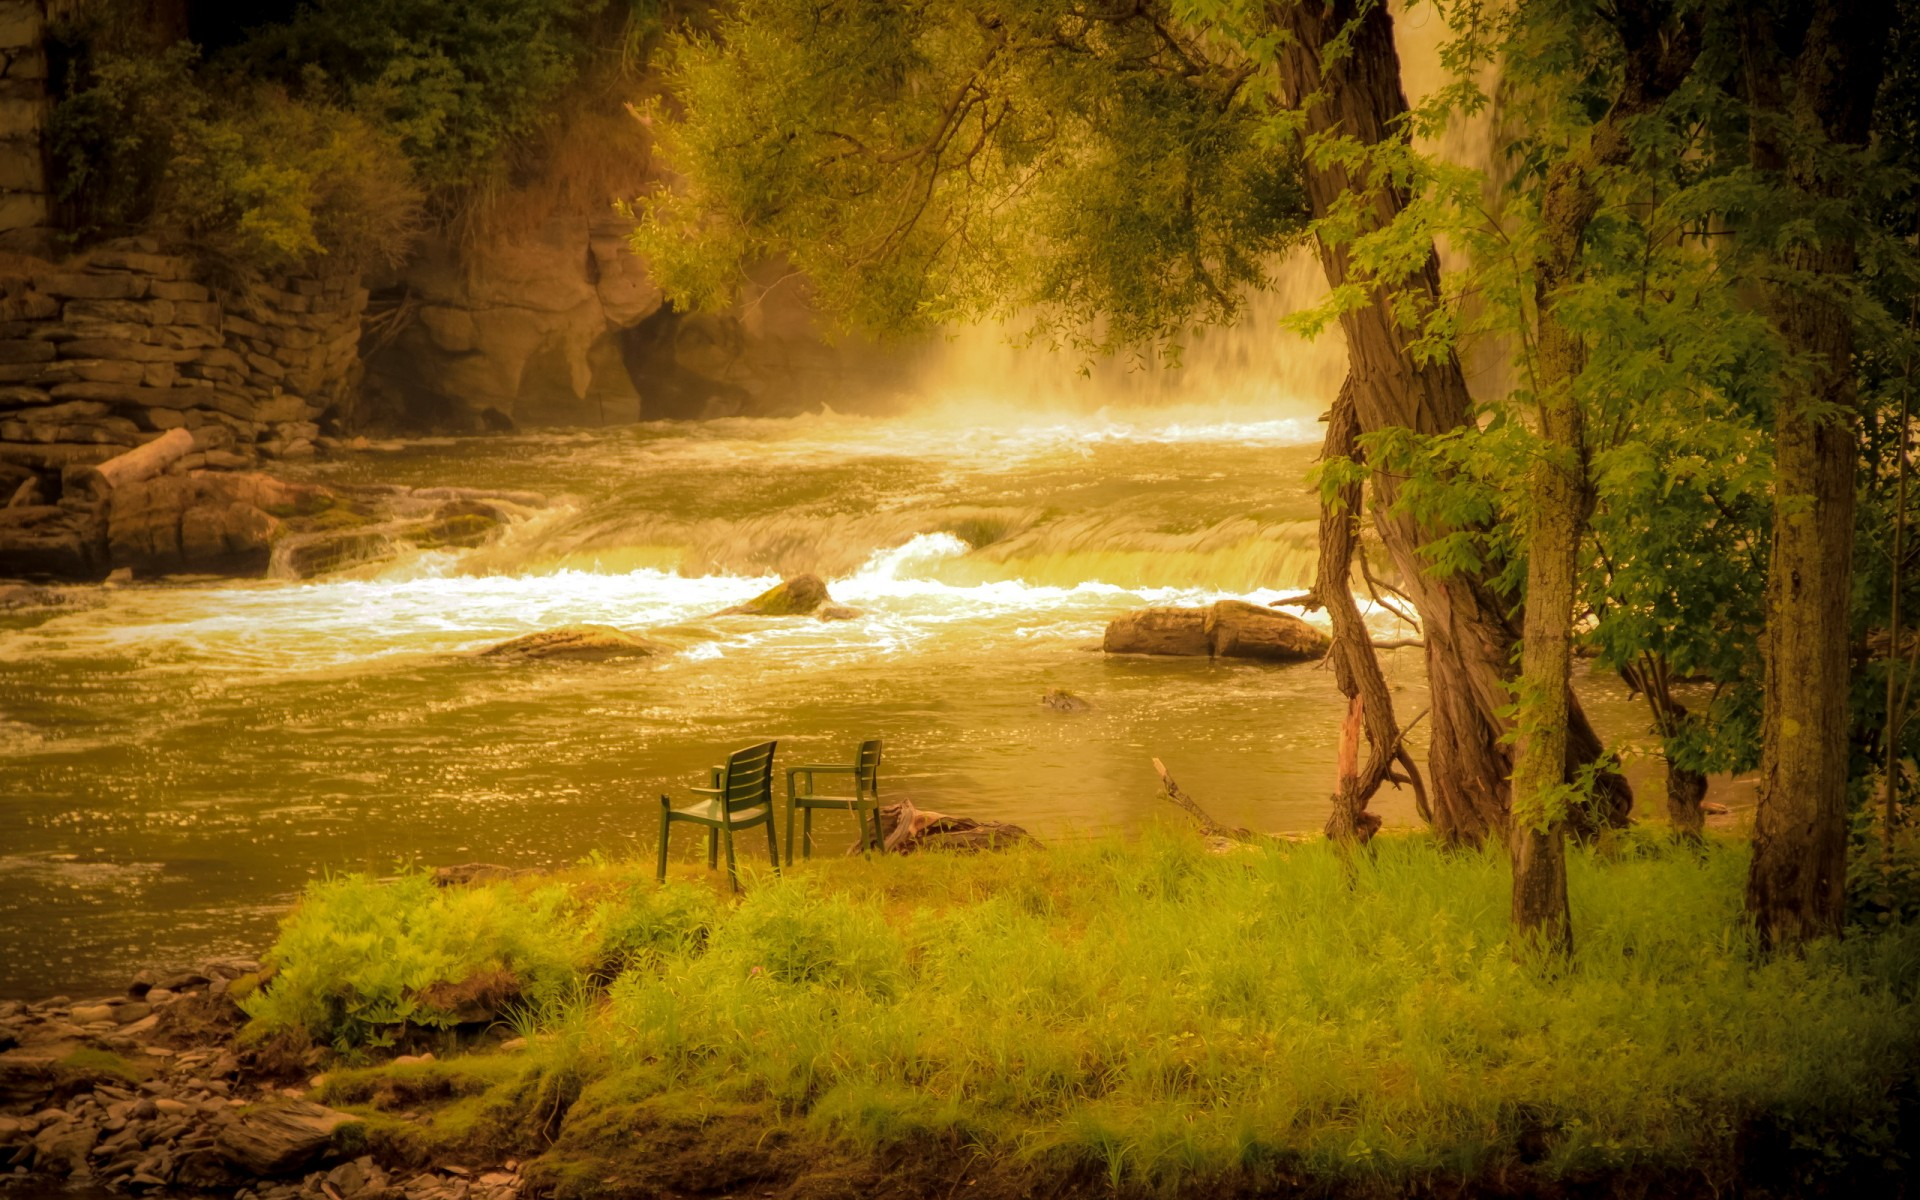 Mood bench rustic chair nature landscapes rivers waterfall rapids